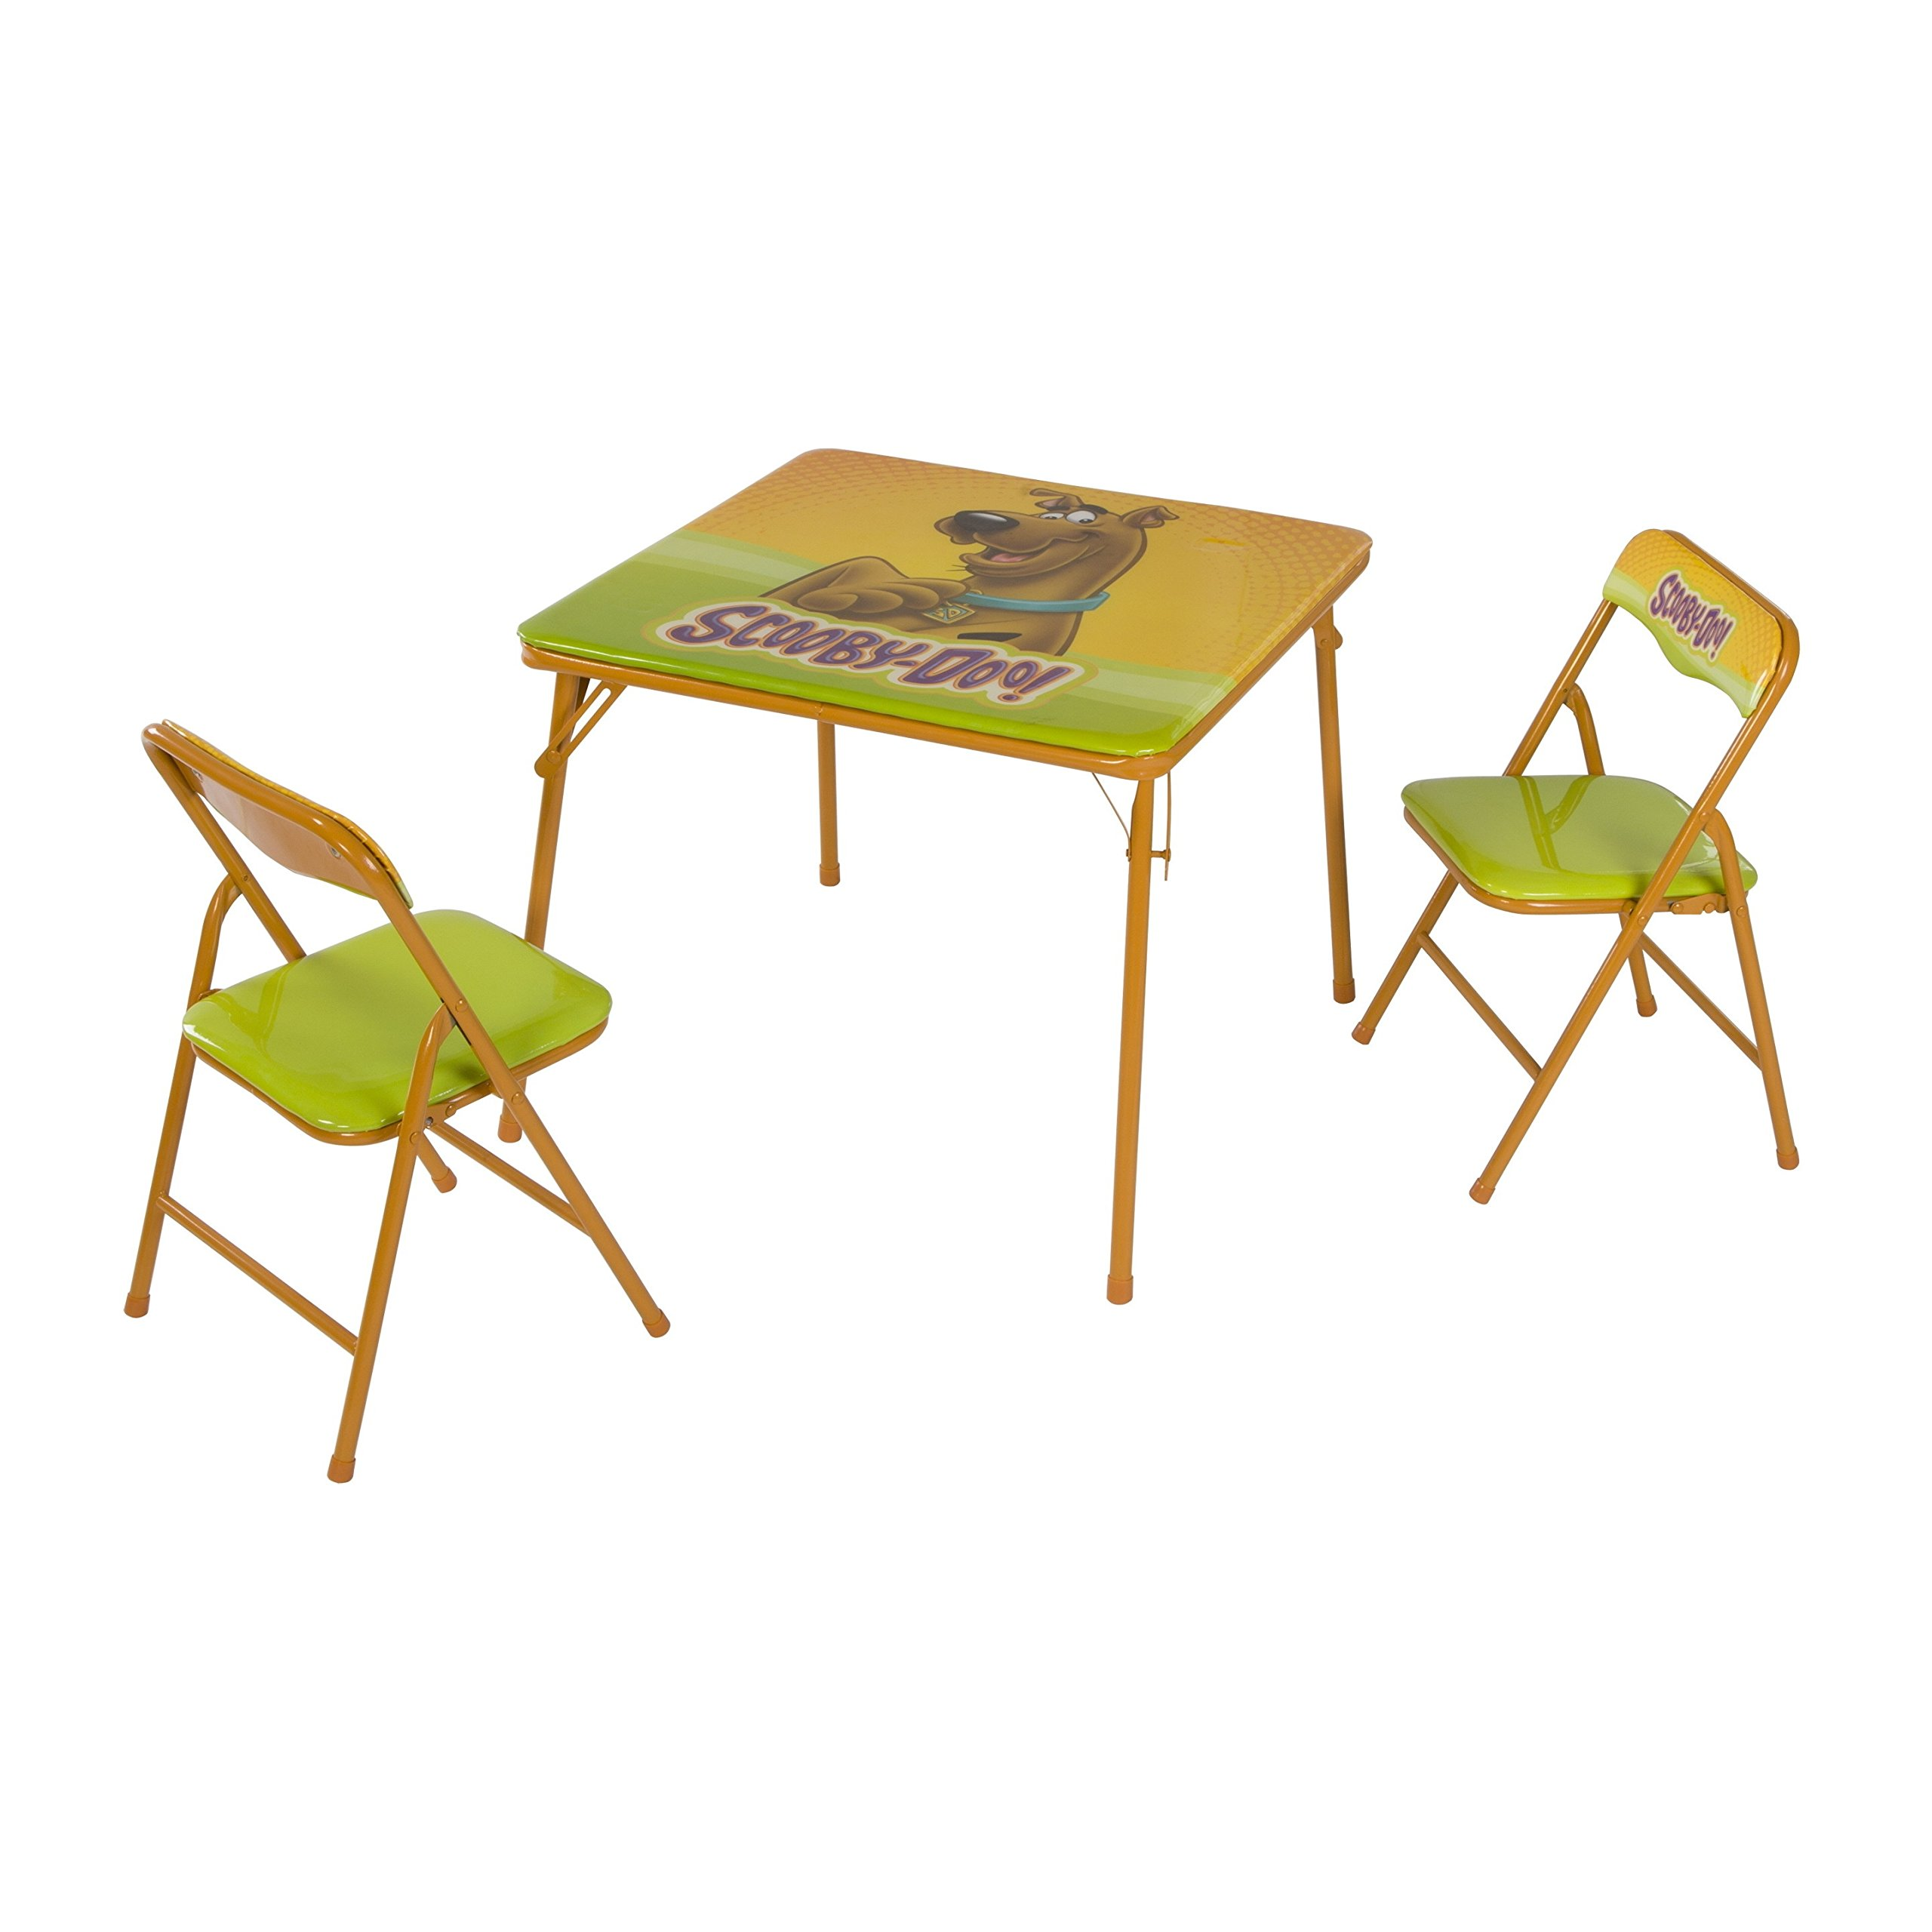 O'Kids Scooby Doo Metal Activity Table and Chair Set